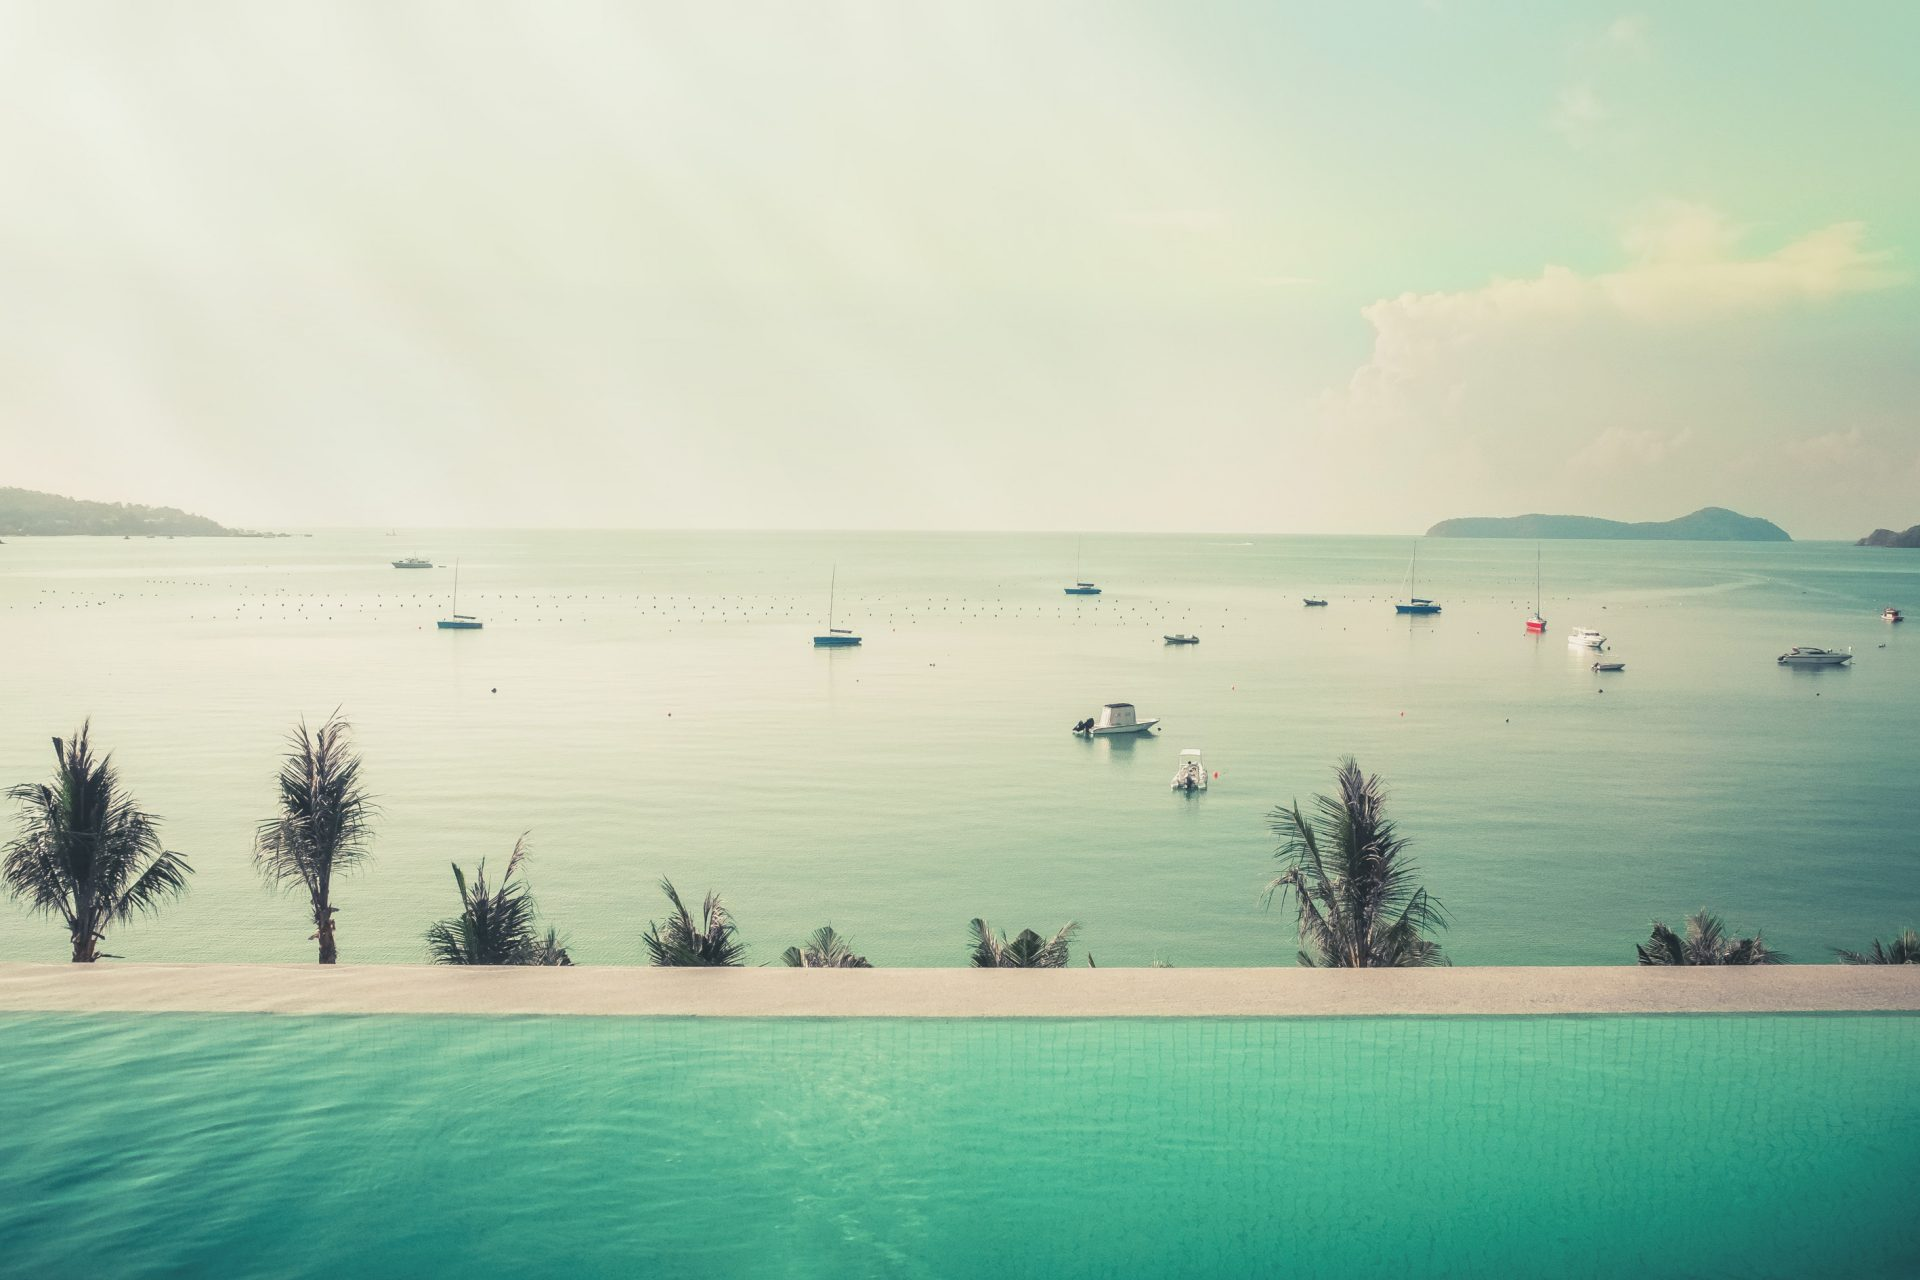 Infinity pool with a view on the sea photo by Jo Kassis